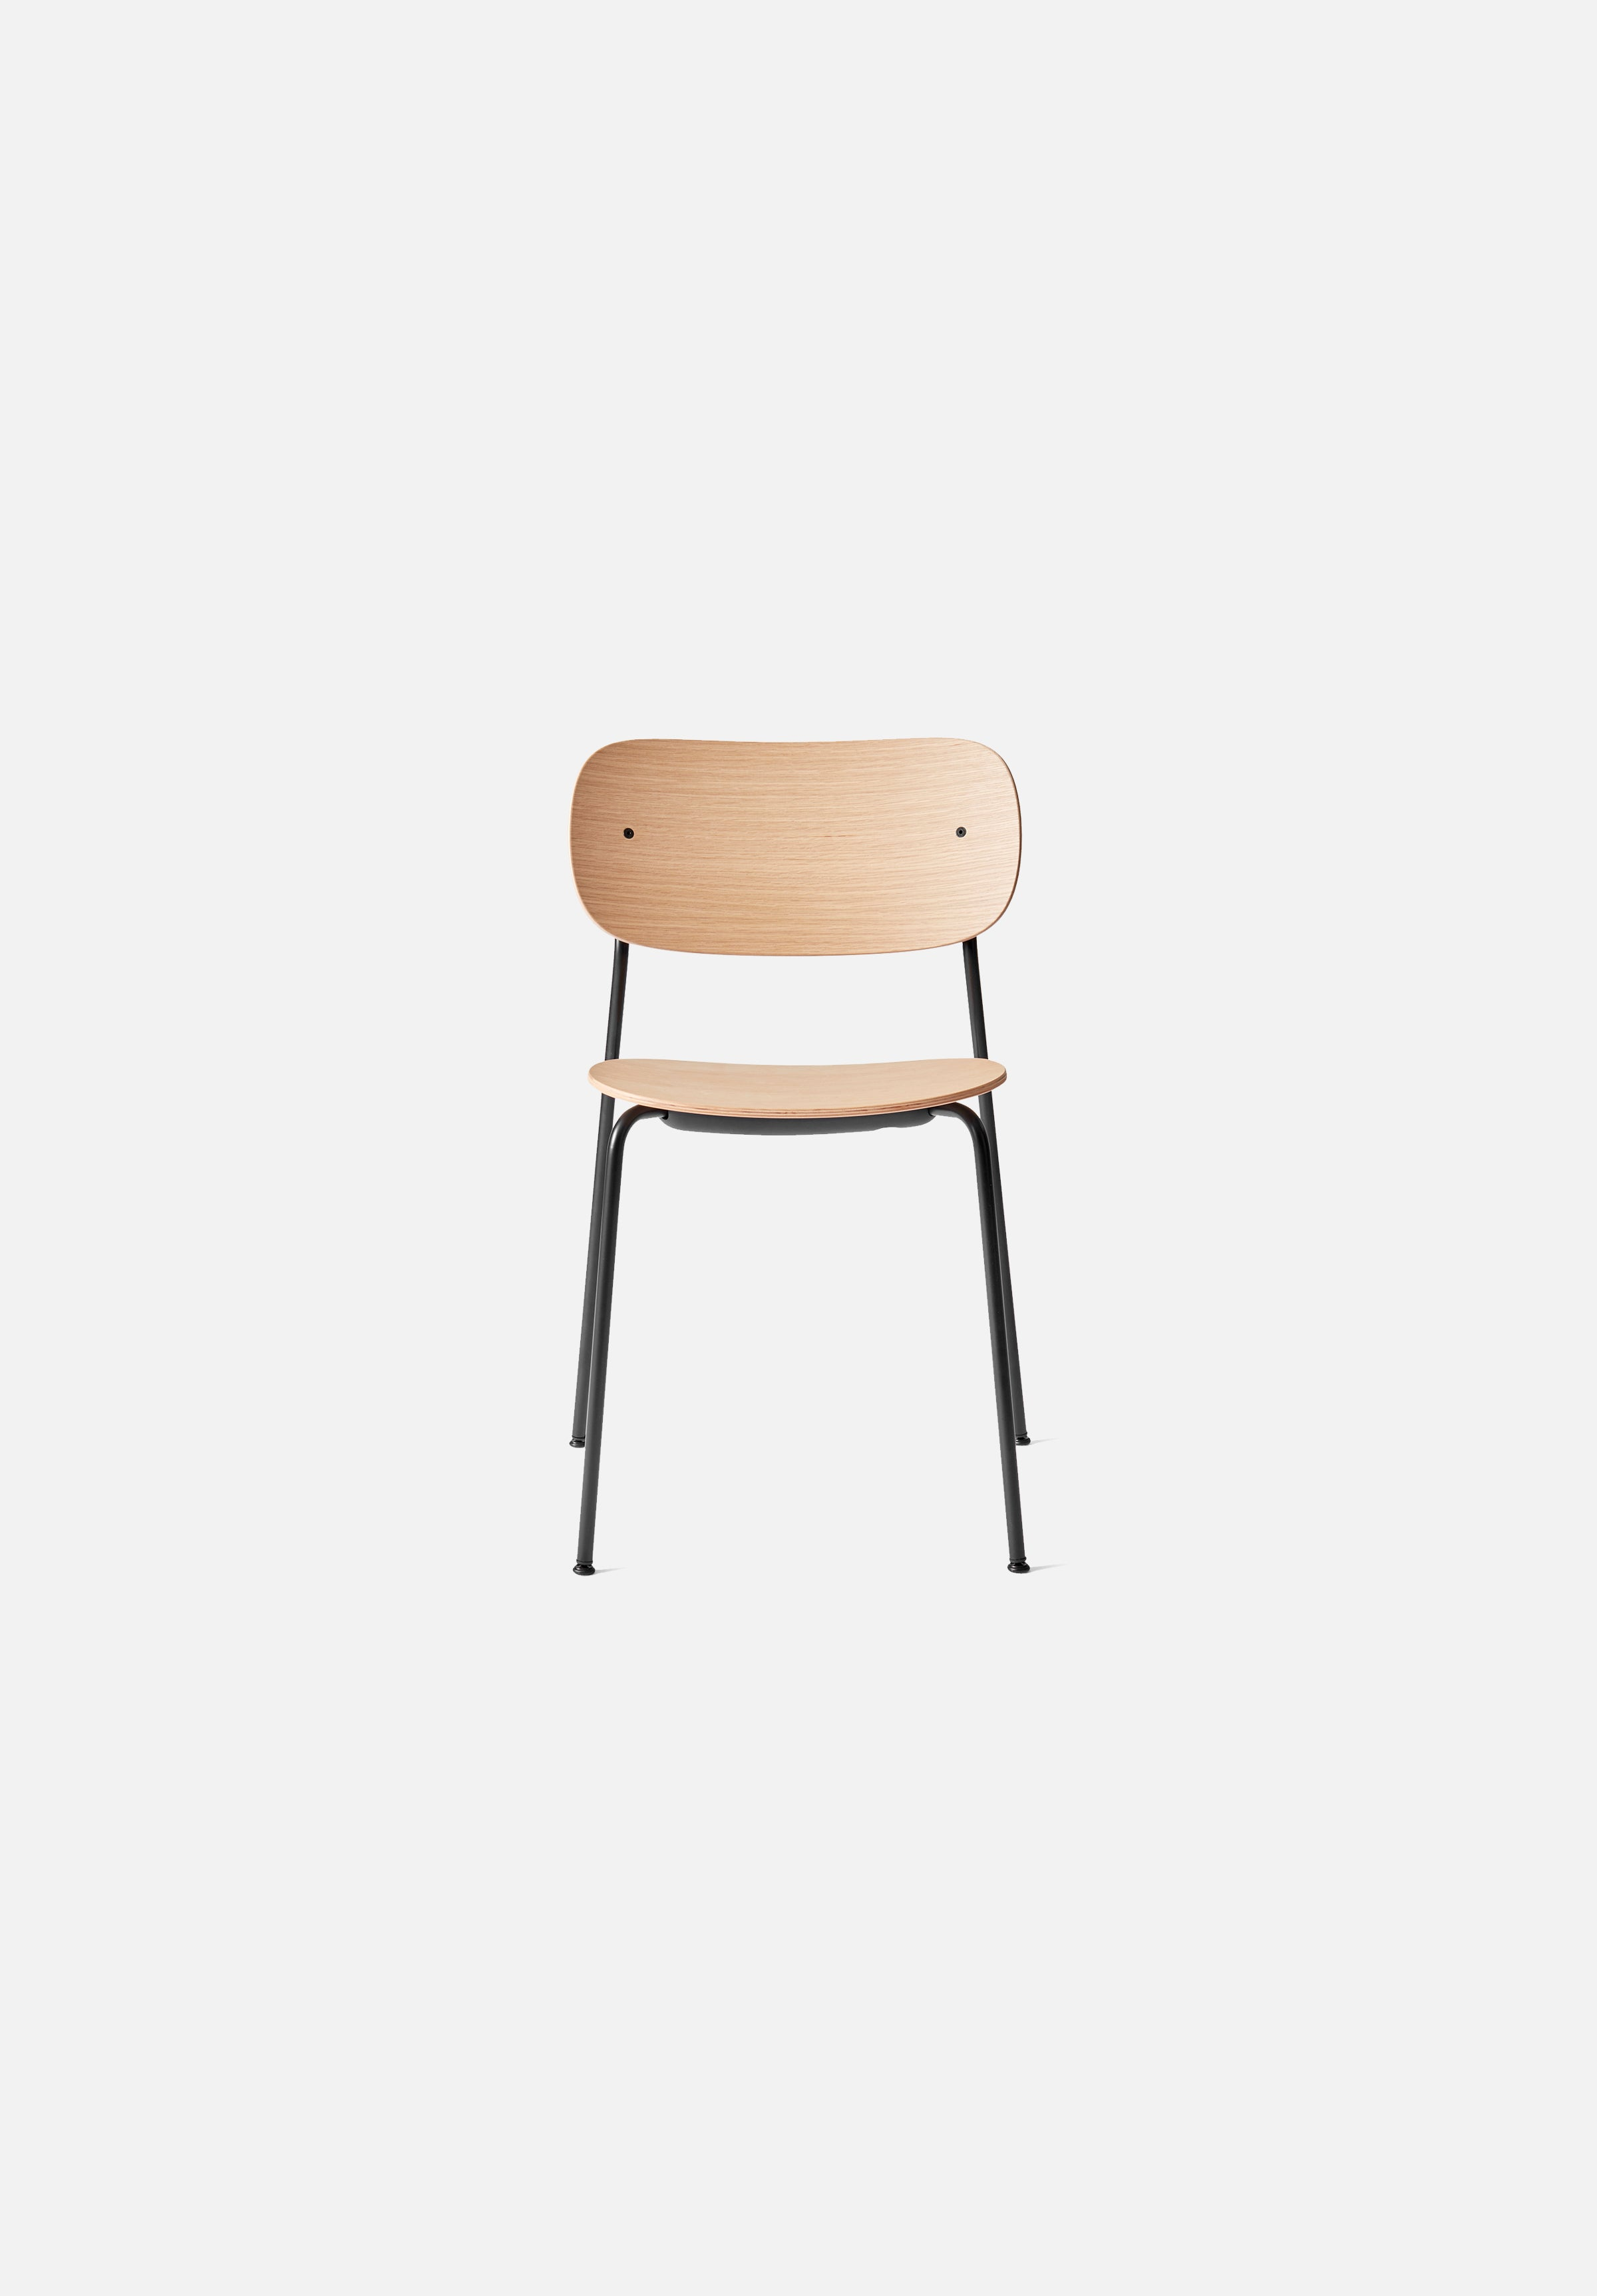 Co Chair-Norm Architects-Menu-Natural Oak-Without-Average